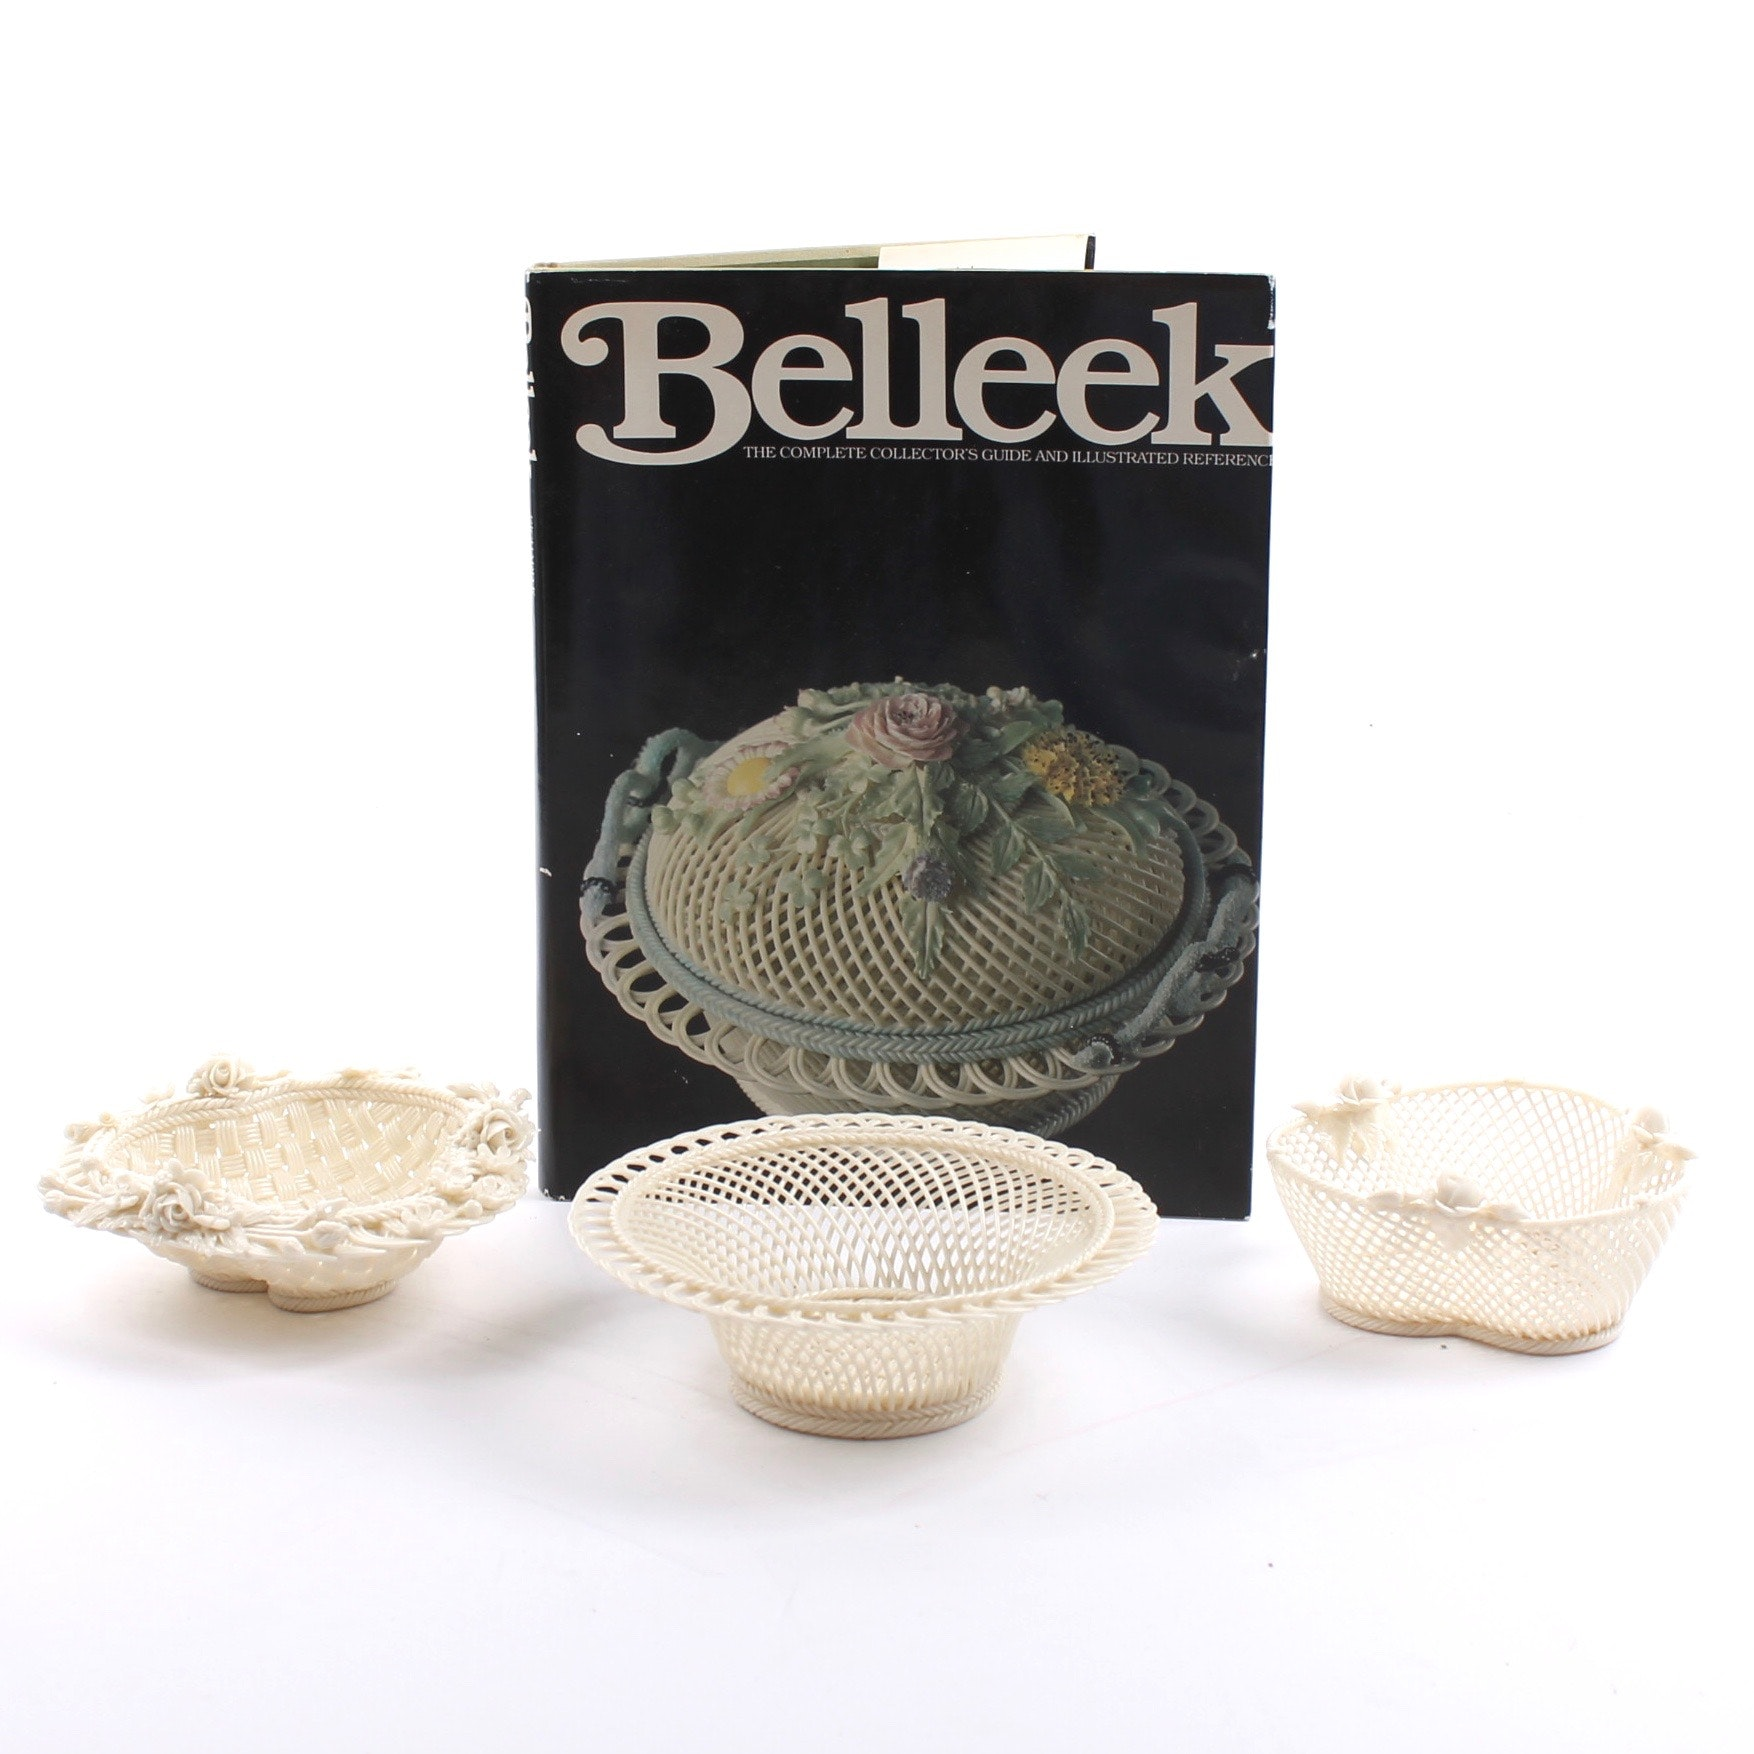 Belleek Porcelain Basketware and Collector Book